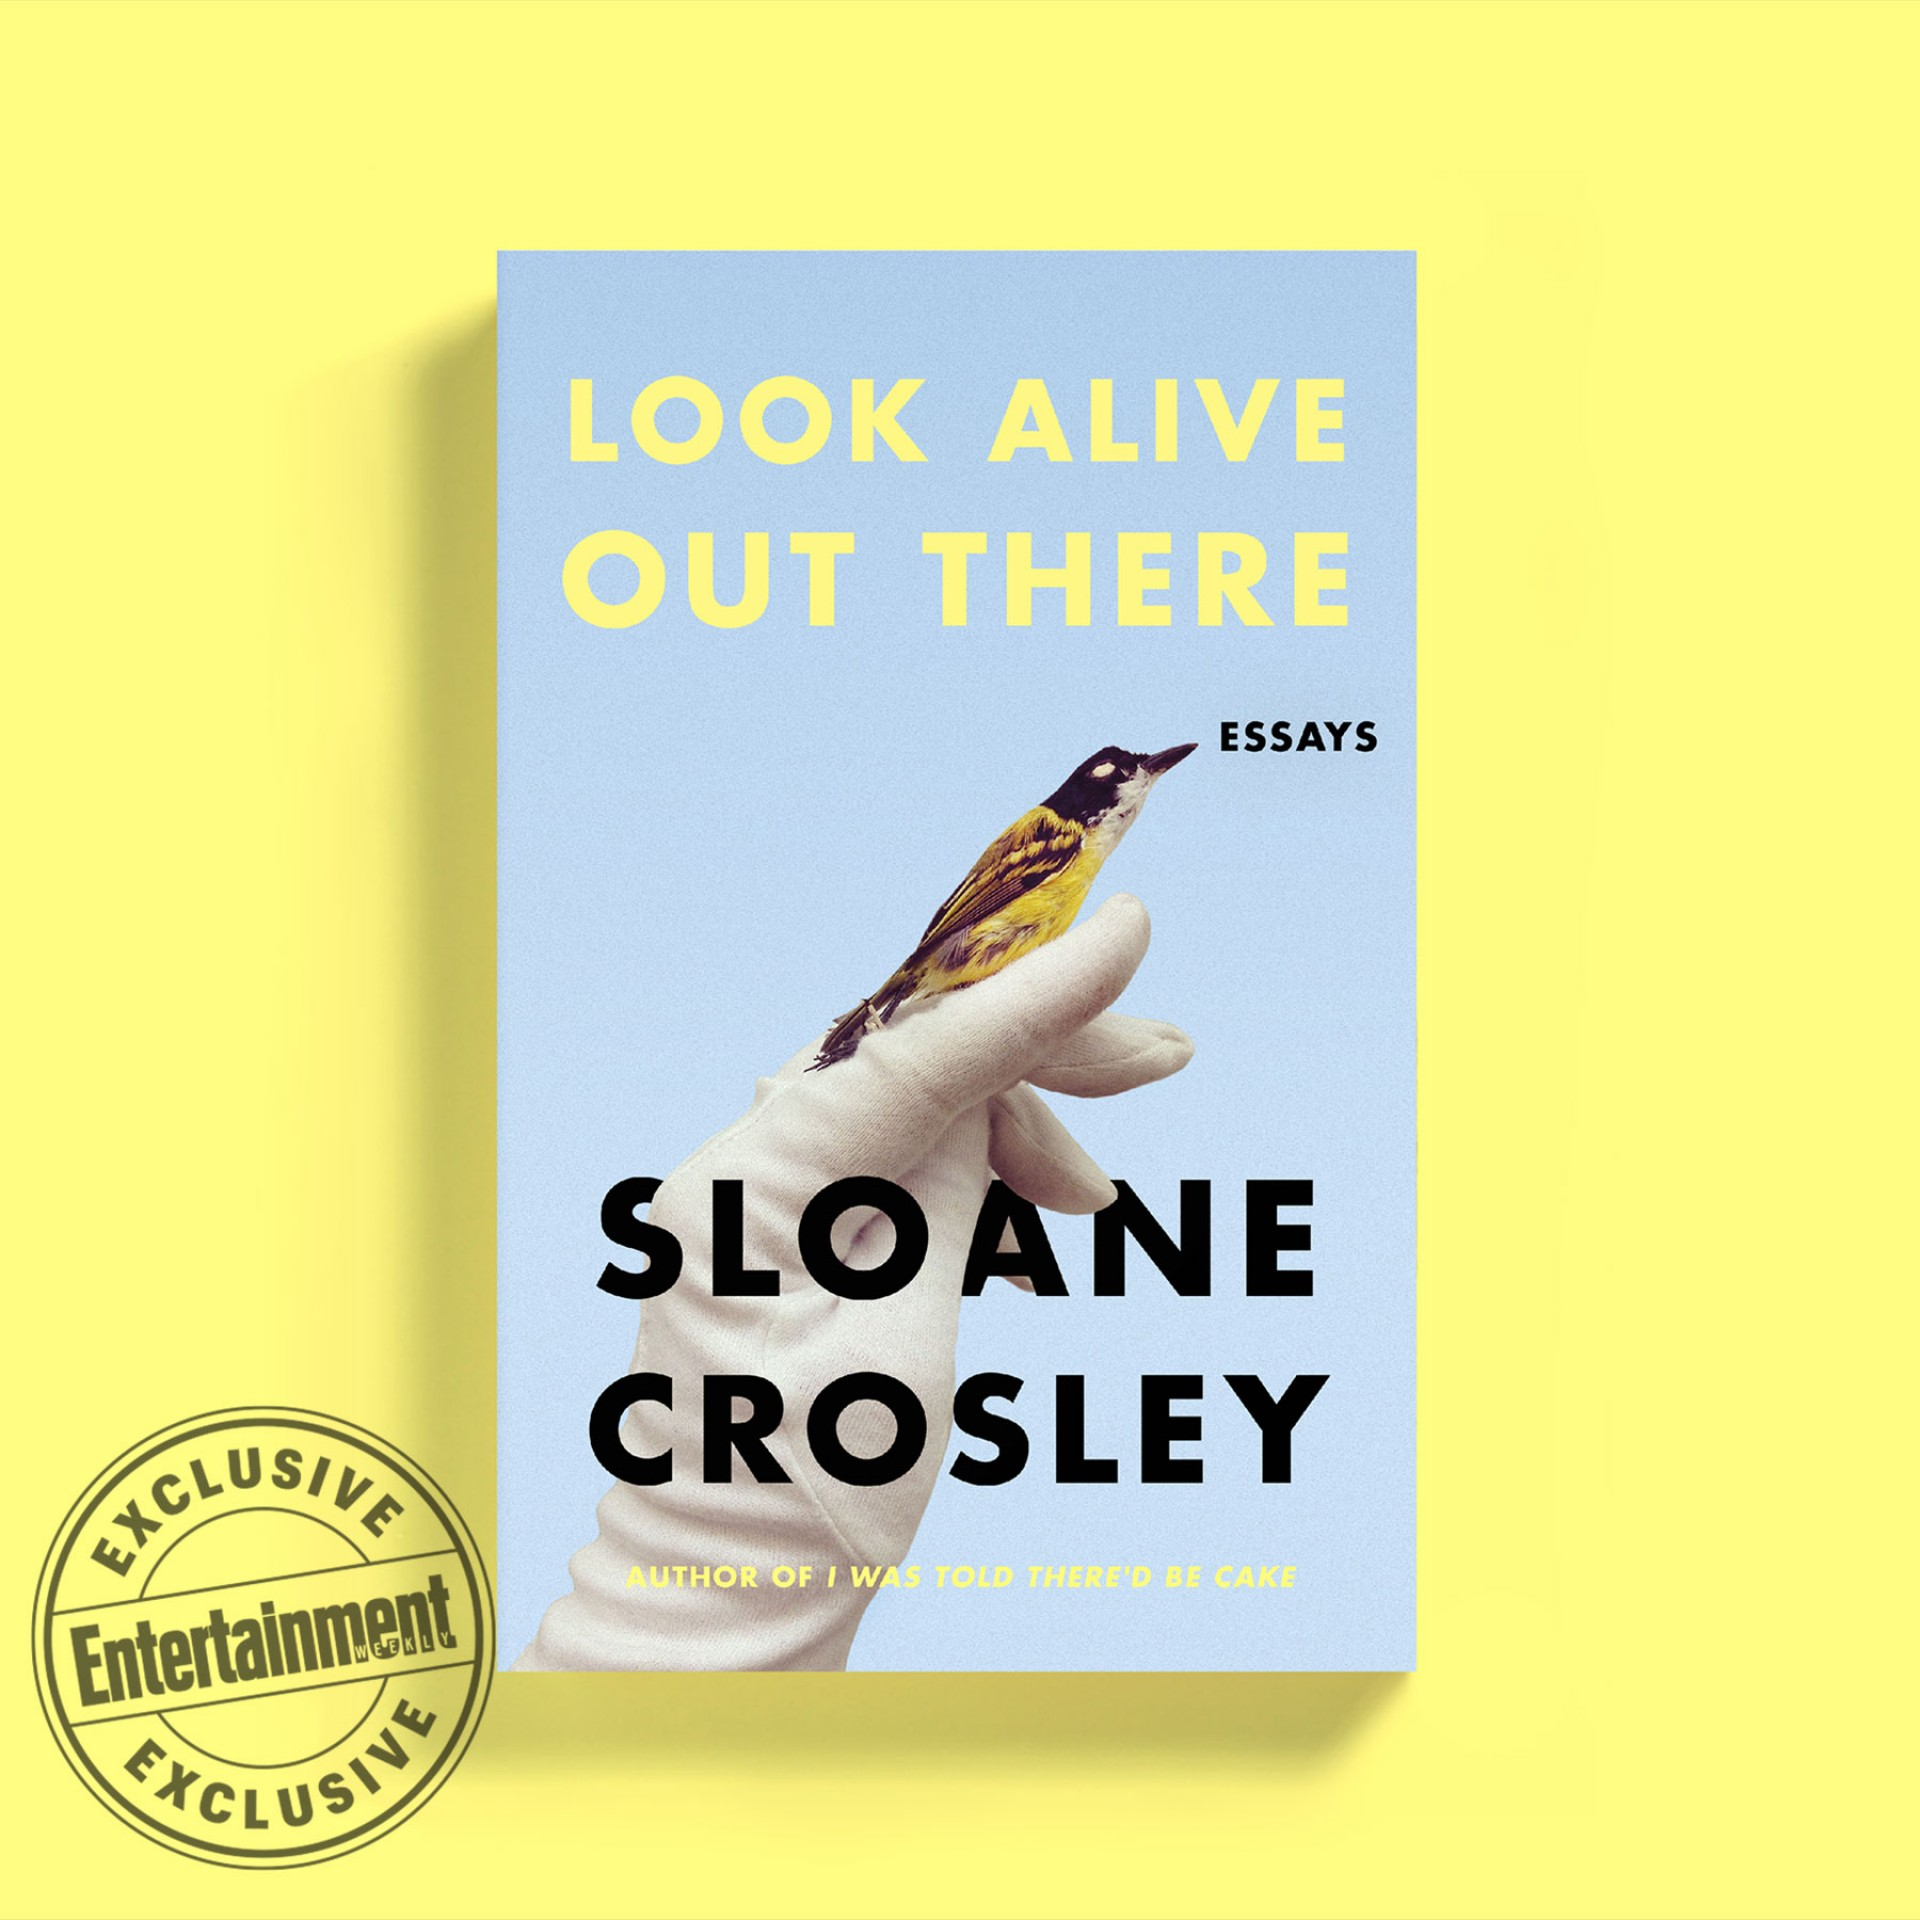 013 Essay Collection Example Sloane Crosley Shocking Best Pdf Collections 2019 1920